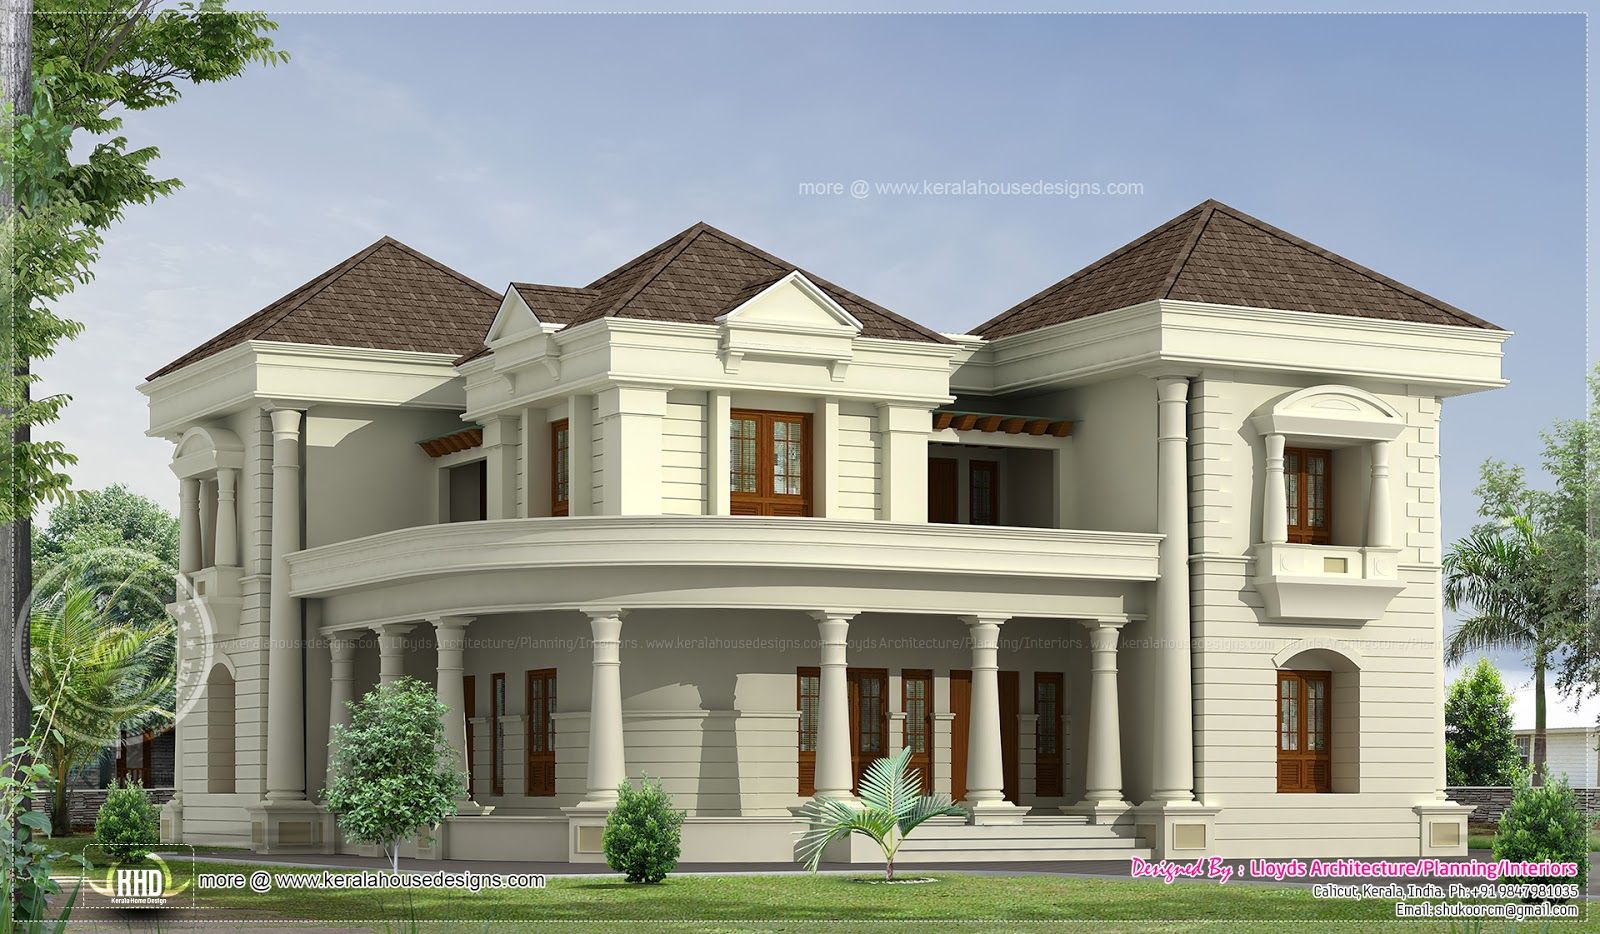 Modern bungalows bedroom luxurious bungalow floor plan for Bungalow bedroom ideas